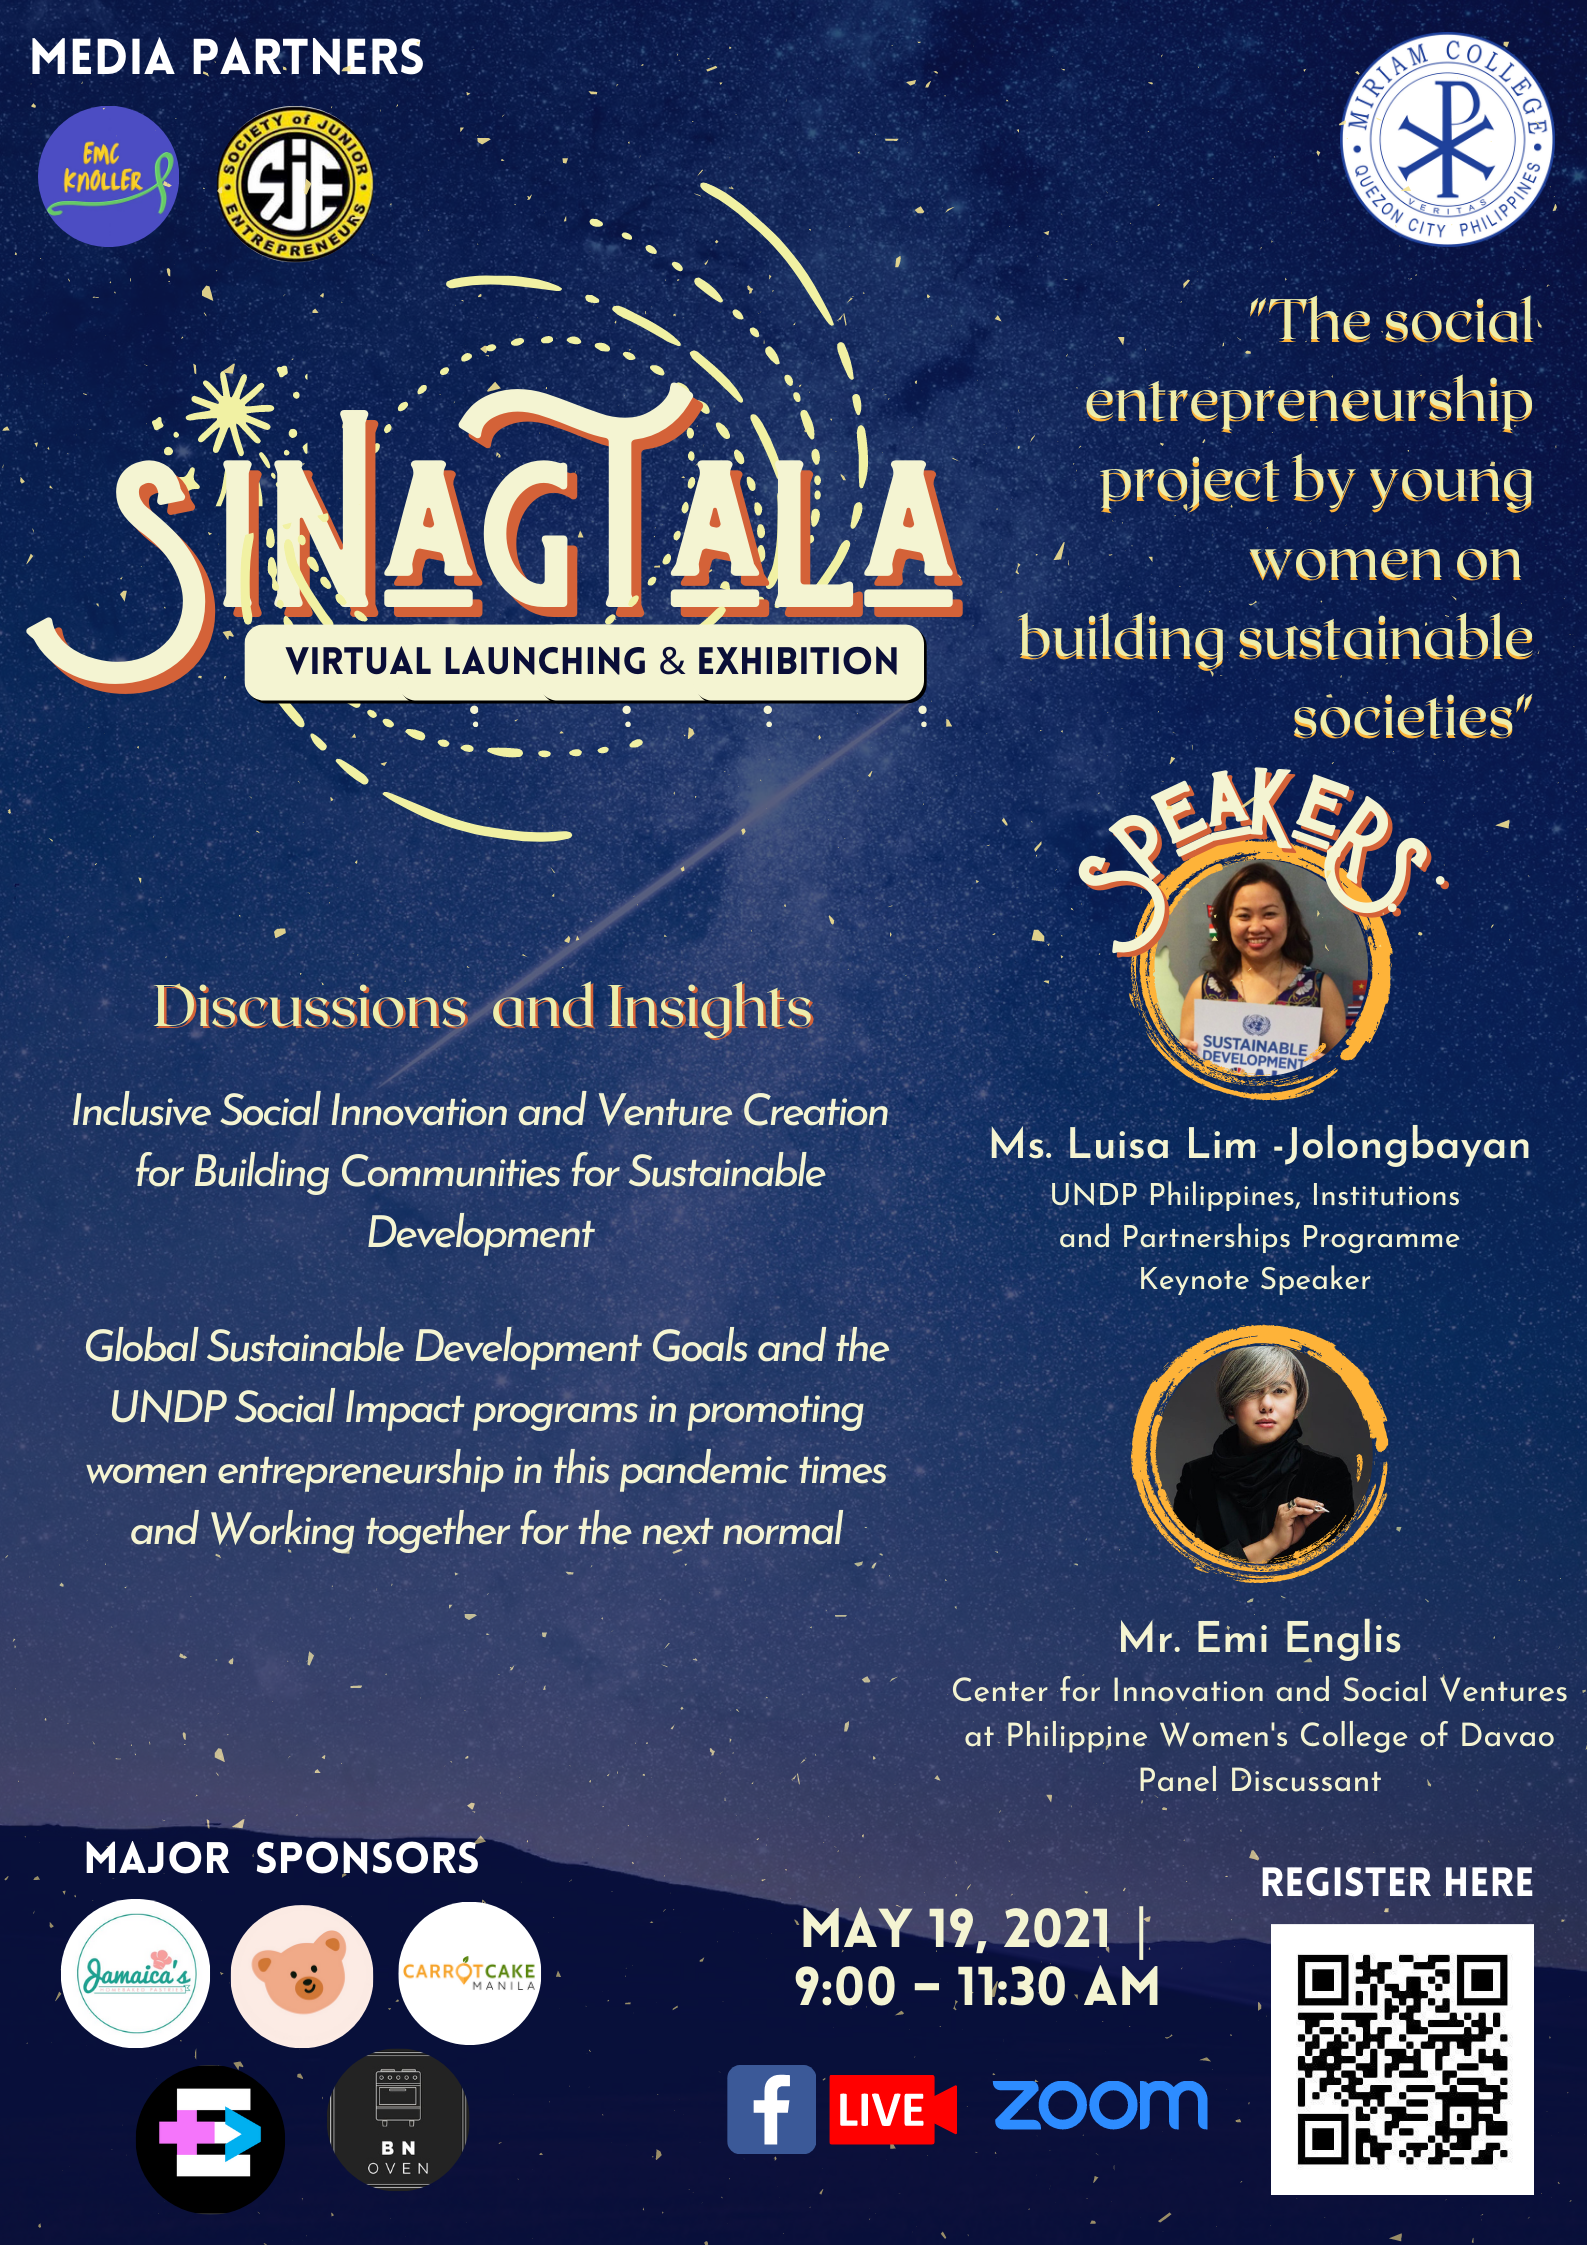 EVENT: SINAGTALA Project